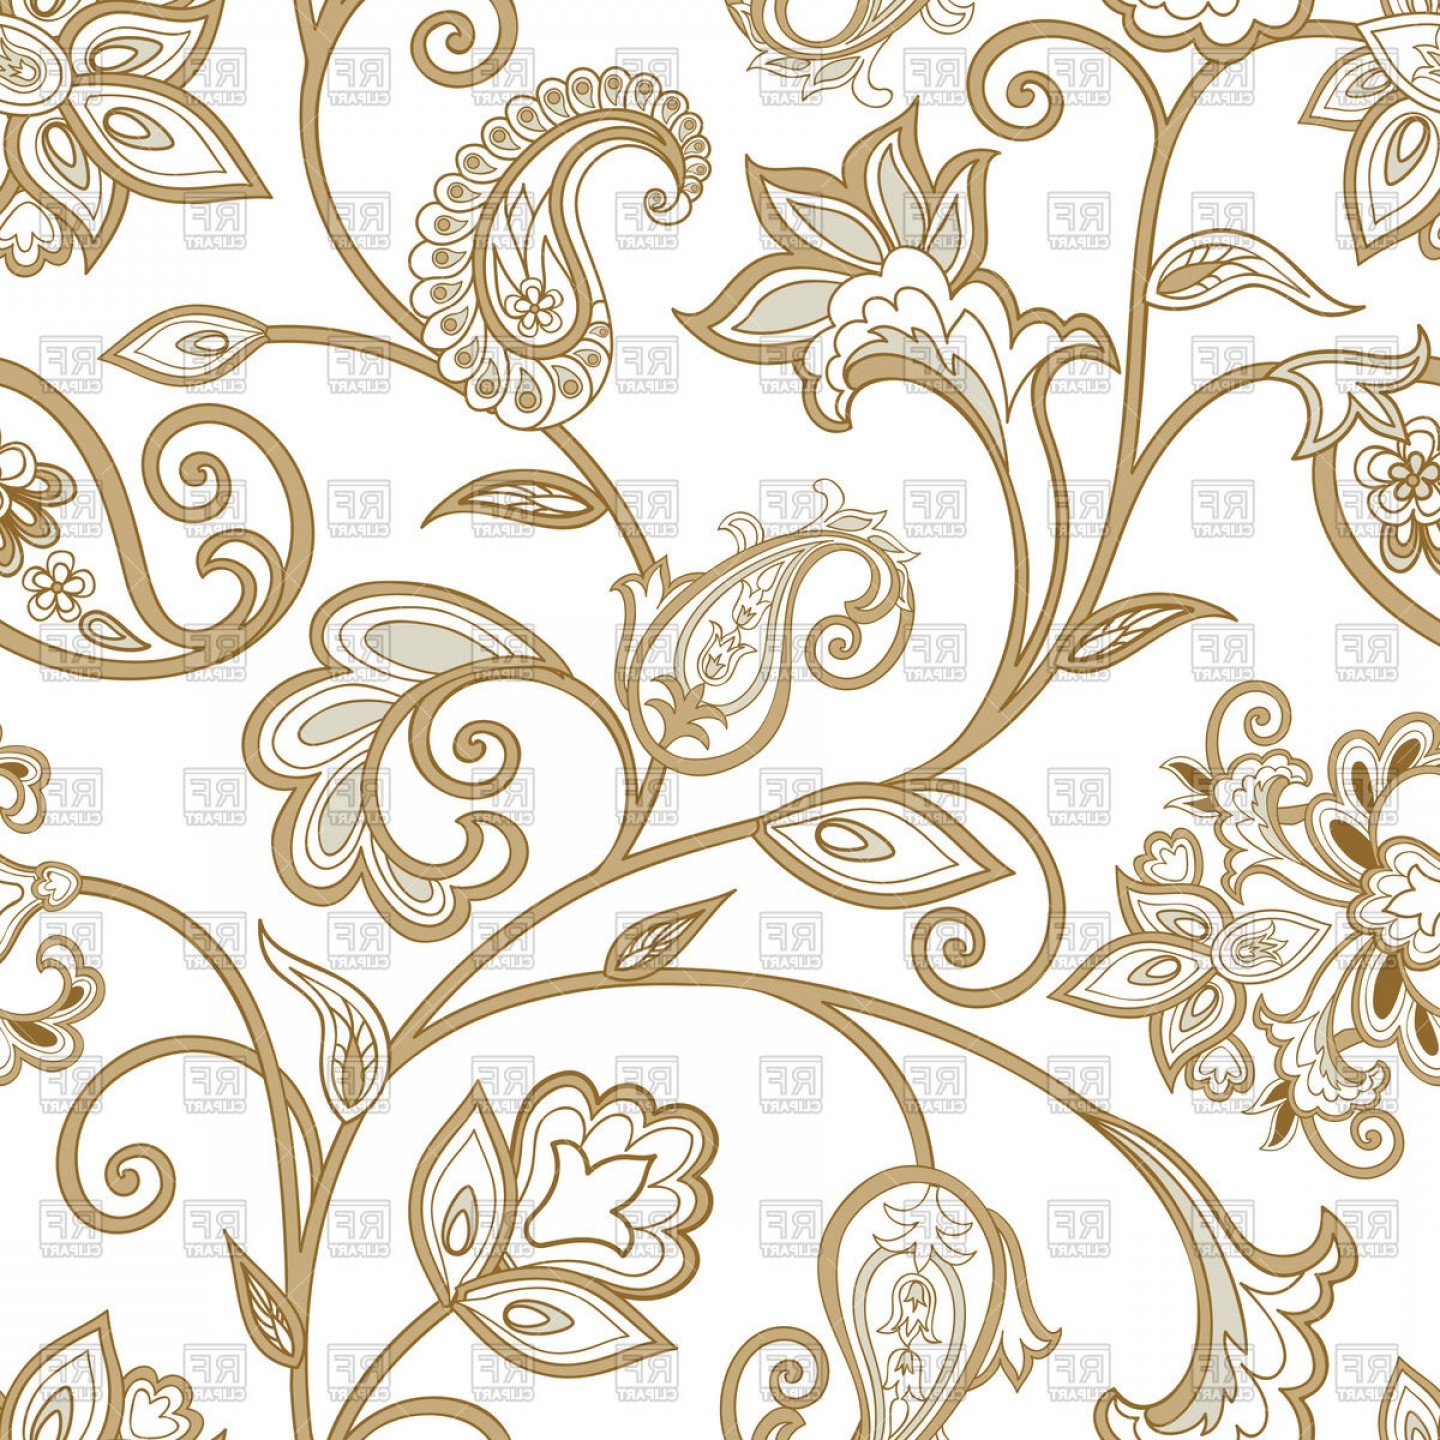 Floral pattern vector clipart. Ethnic with curly flourish